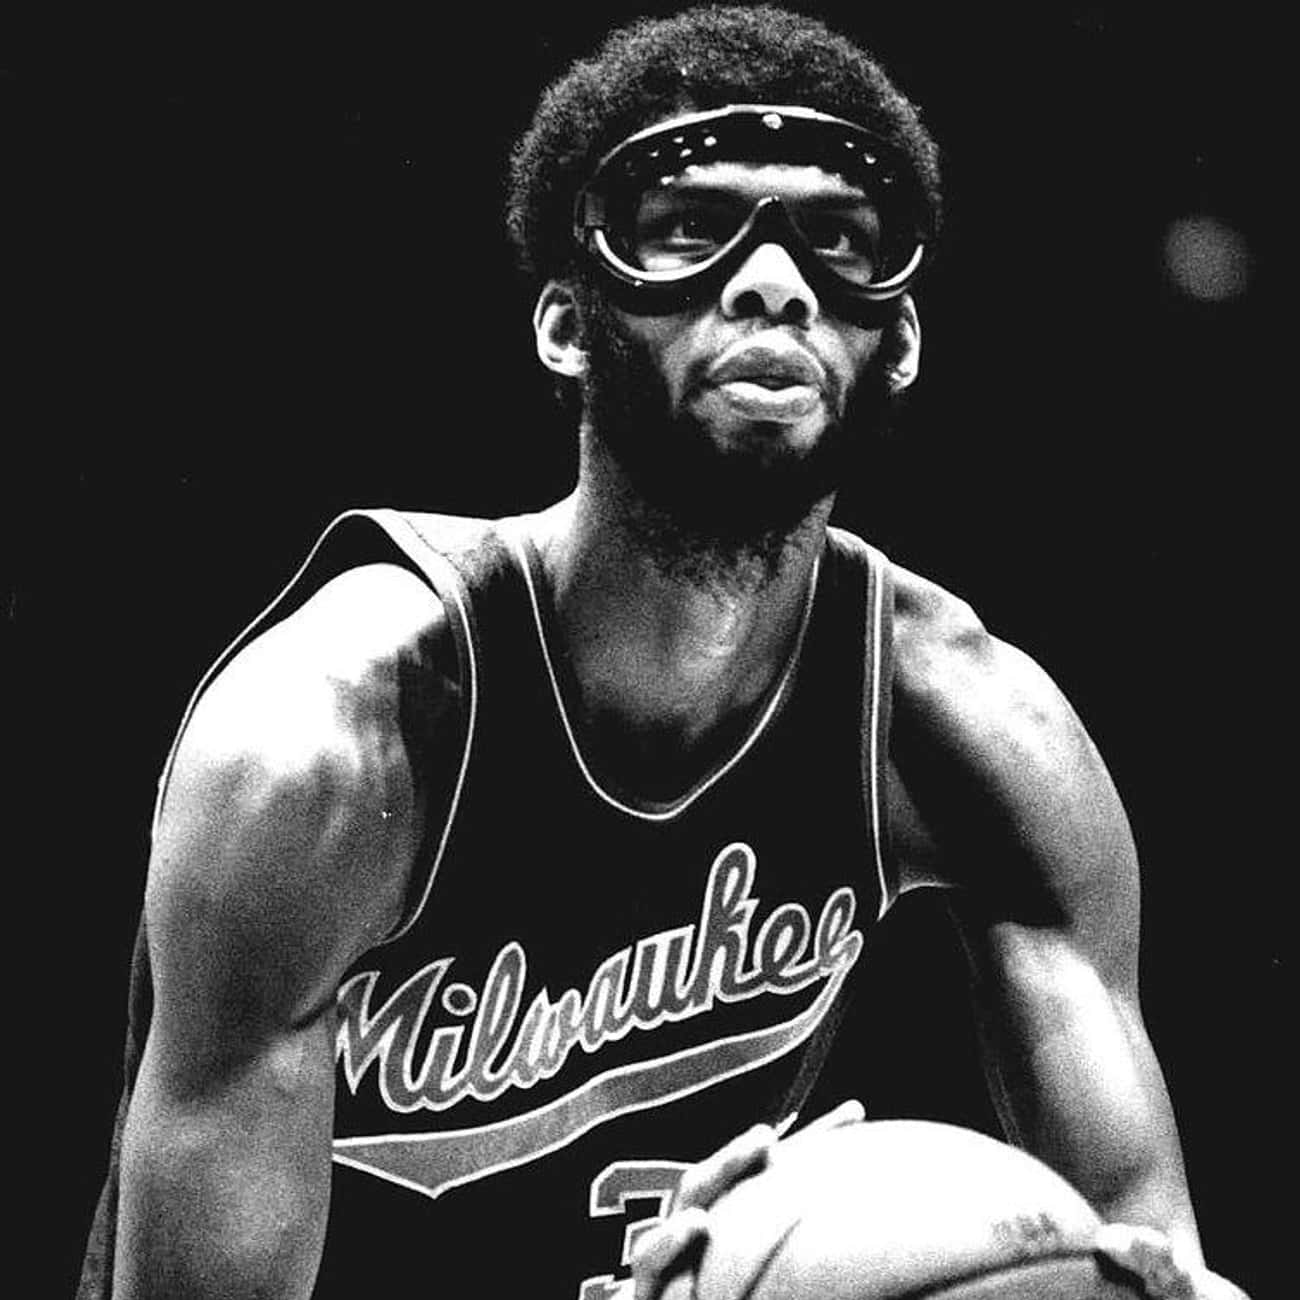 Kareem Abdul-Jabbar is listed (or ranked) 1 on the list The Best Athletes Who Wore #33